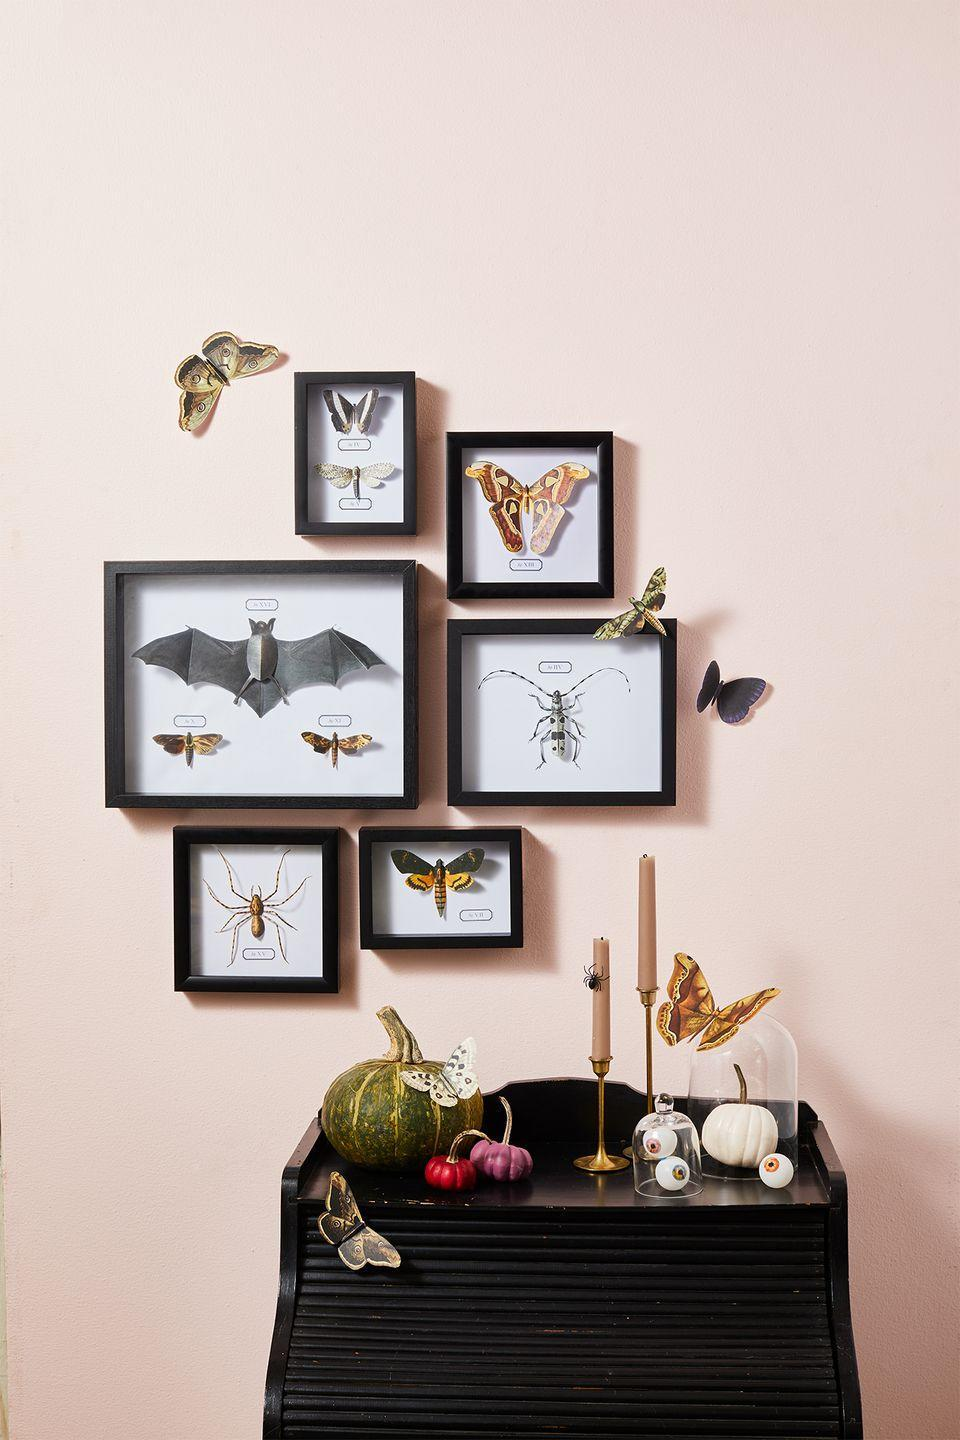 """<p>Replace a wall of family photos with a creepy crawly gallery wall. Print out our Halloween clip art of bugs and bats on card stock, cut them out and display in frames. </p><p><em><a href=""""https://www.goodhousekeeping.com/holidays/halloween-ideas/a33564450/gh-halloween-artwork-calligraphy-templates/"""" rel=""""nofollow noopener"""" target=""""_blank"""" data-ylk=""""slk:Get the printables »"""" class=""""link rapid-noclick-resp"""">Get the printables »</a></em></p>"""